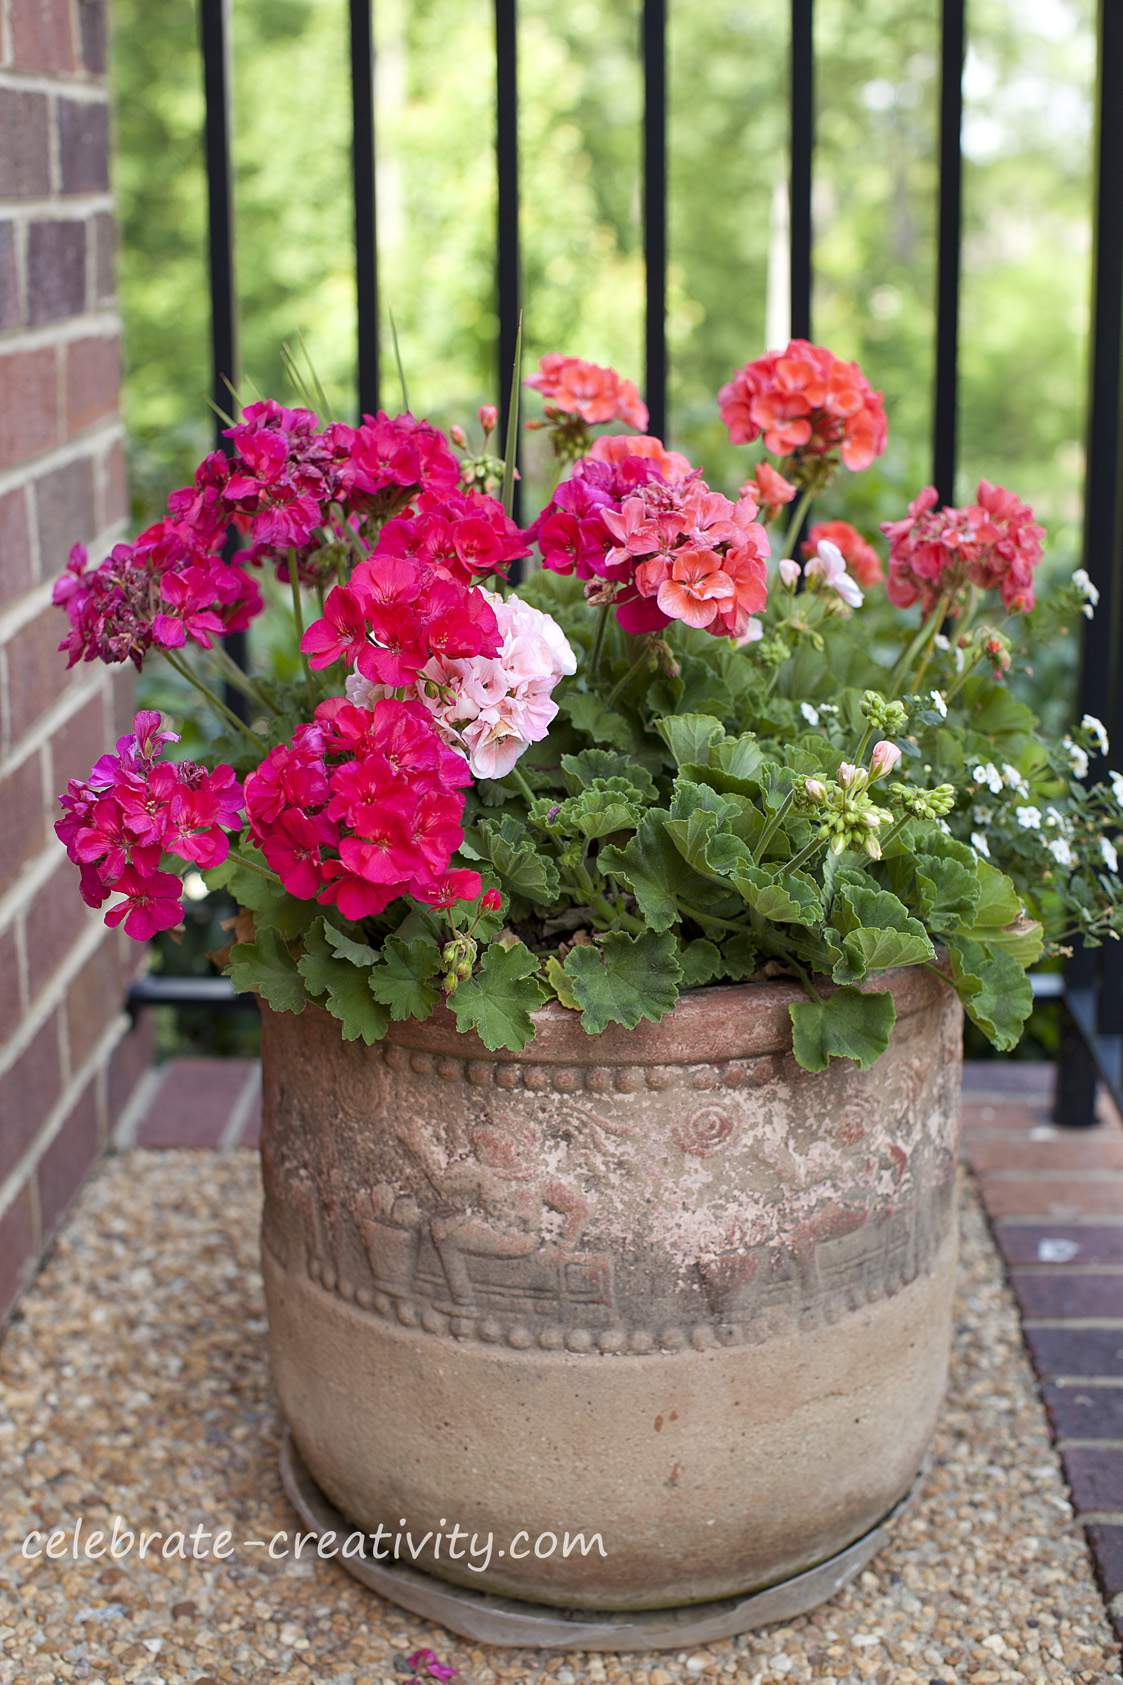 Celebrate creativity - Growing petunias pots balconies porches ...